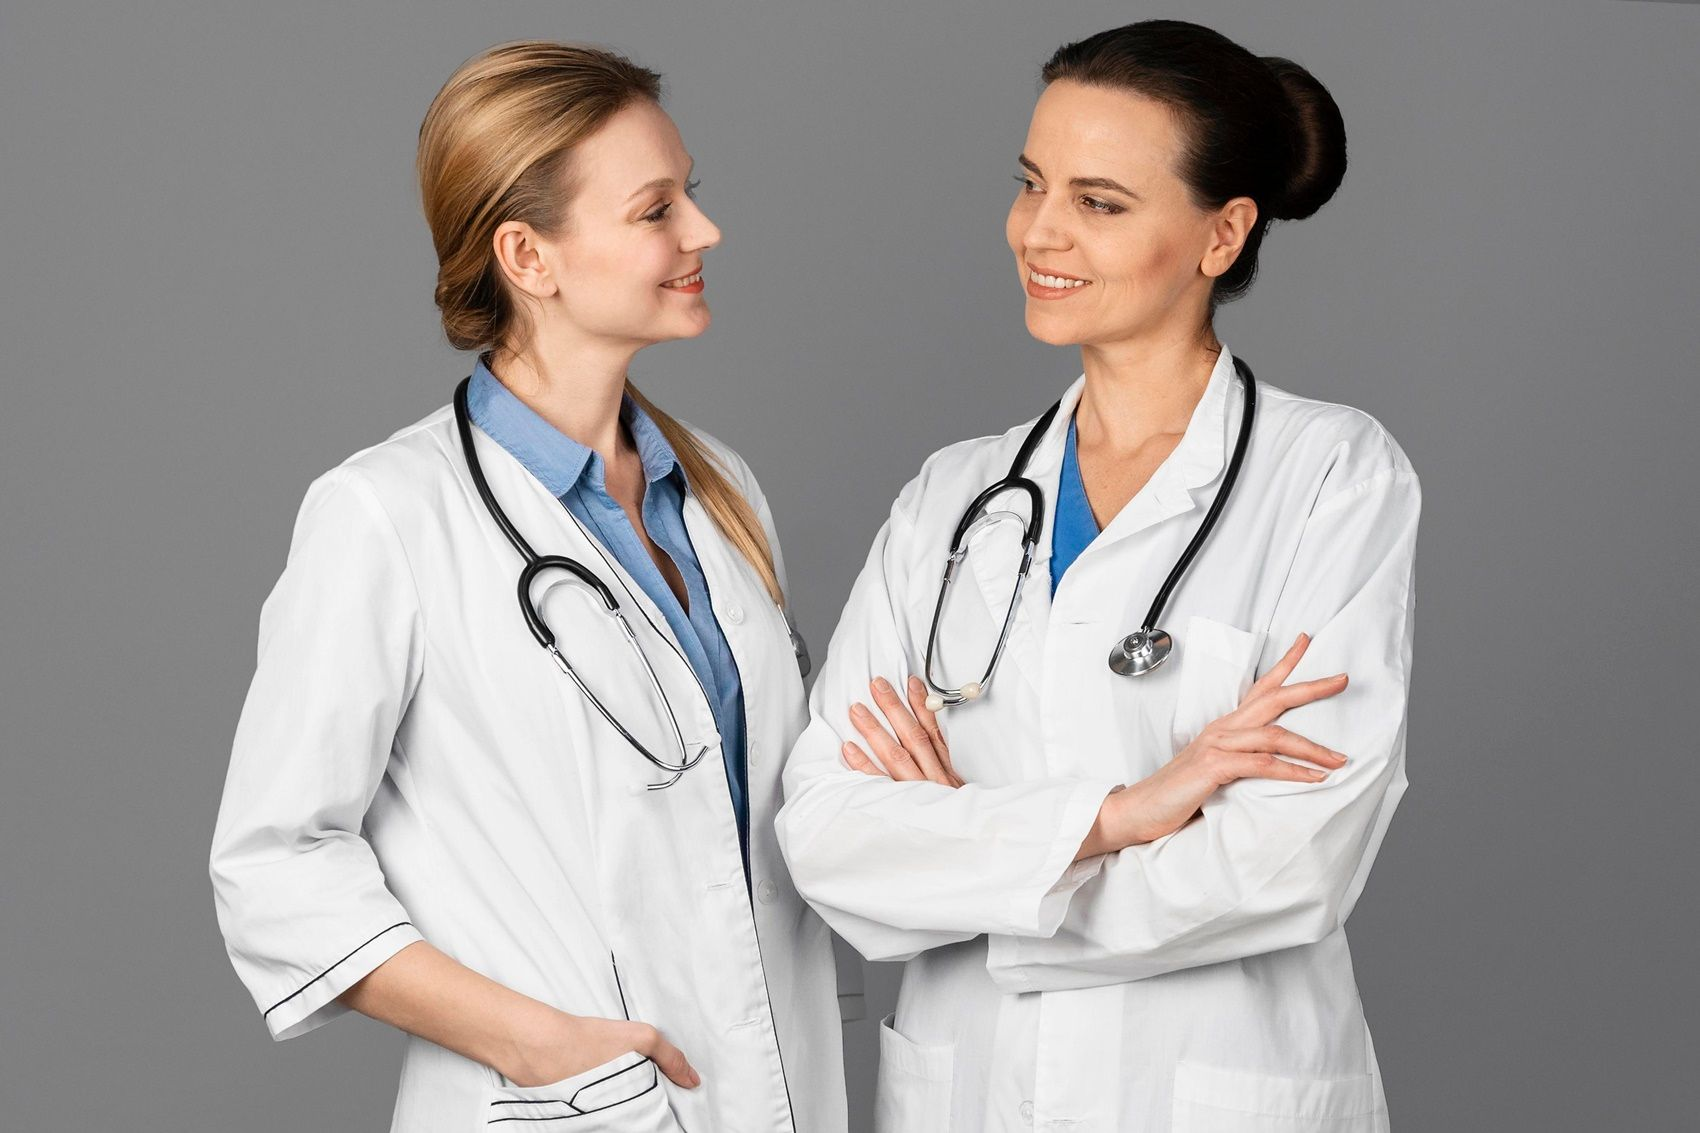 The rise of women in the medical field in recent years